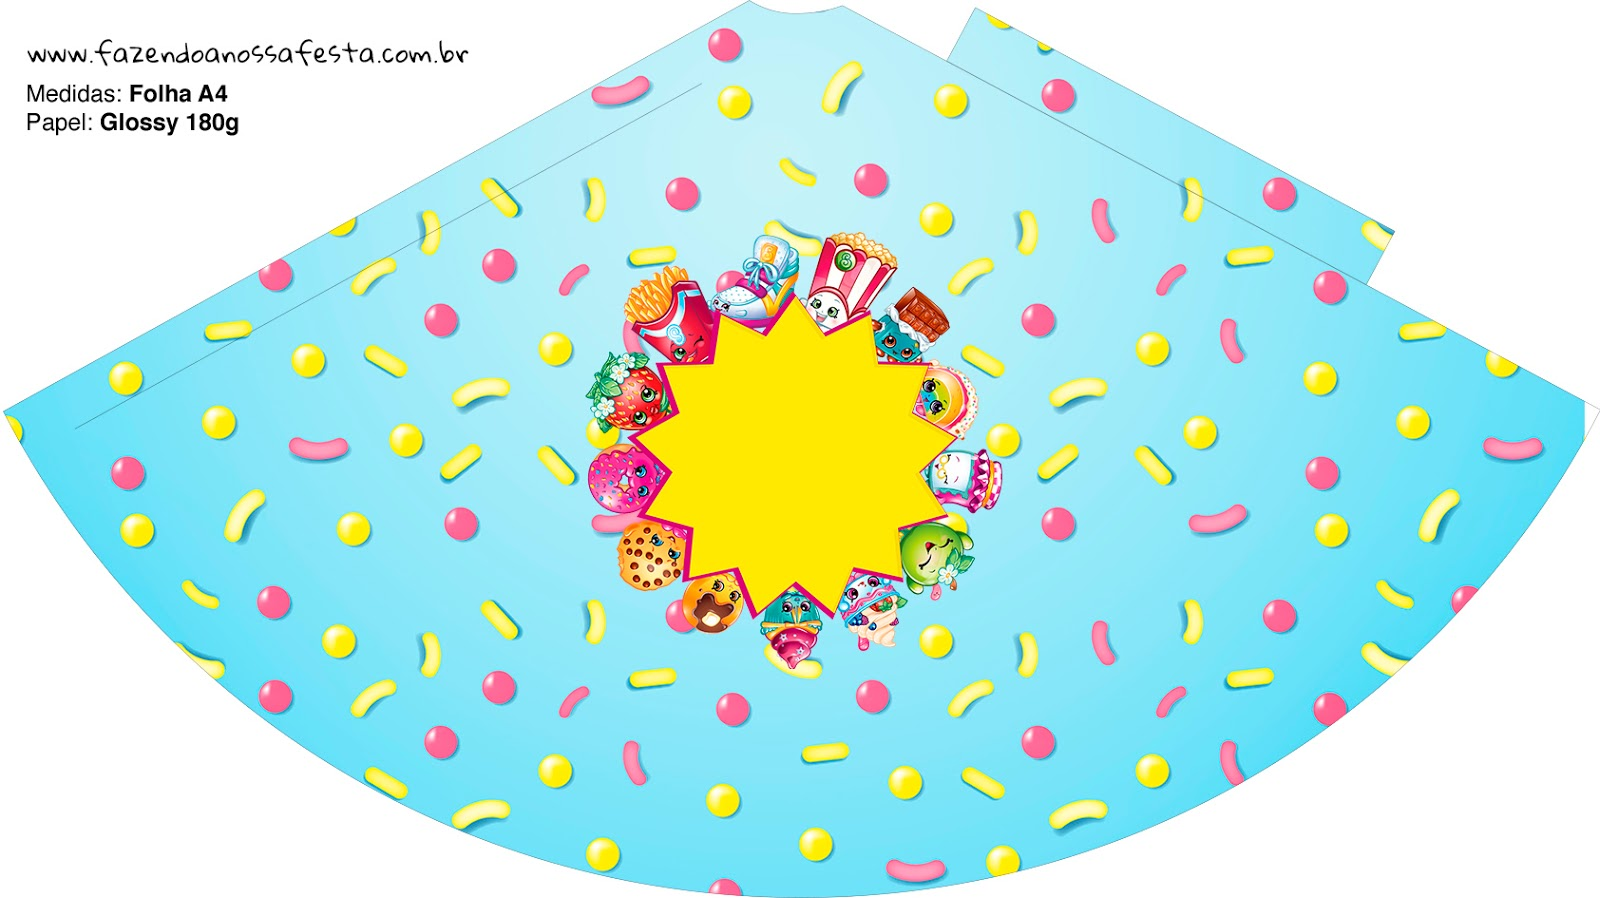 picture about Shopkins Printable named Shopkins: Absolutely free Bash Printables. - Oh My Fiesta! within just english